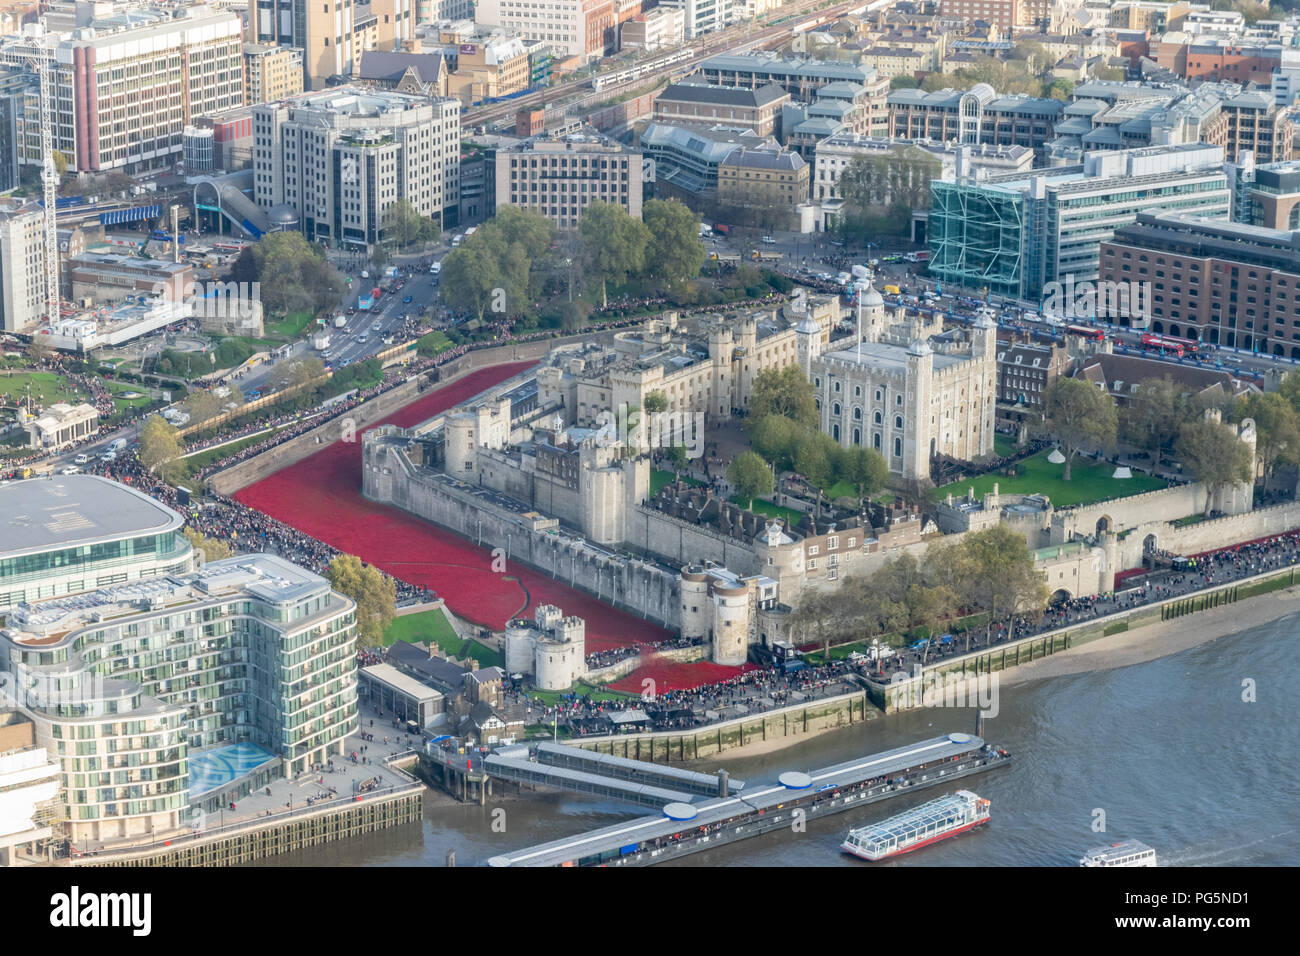 Blood Swept Lands and Seas of Red, Tower of London Stock Photo